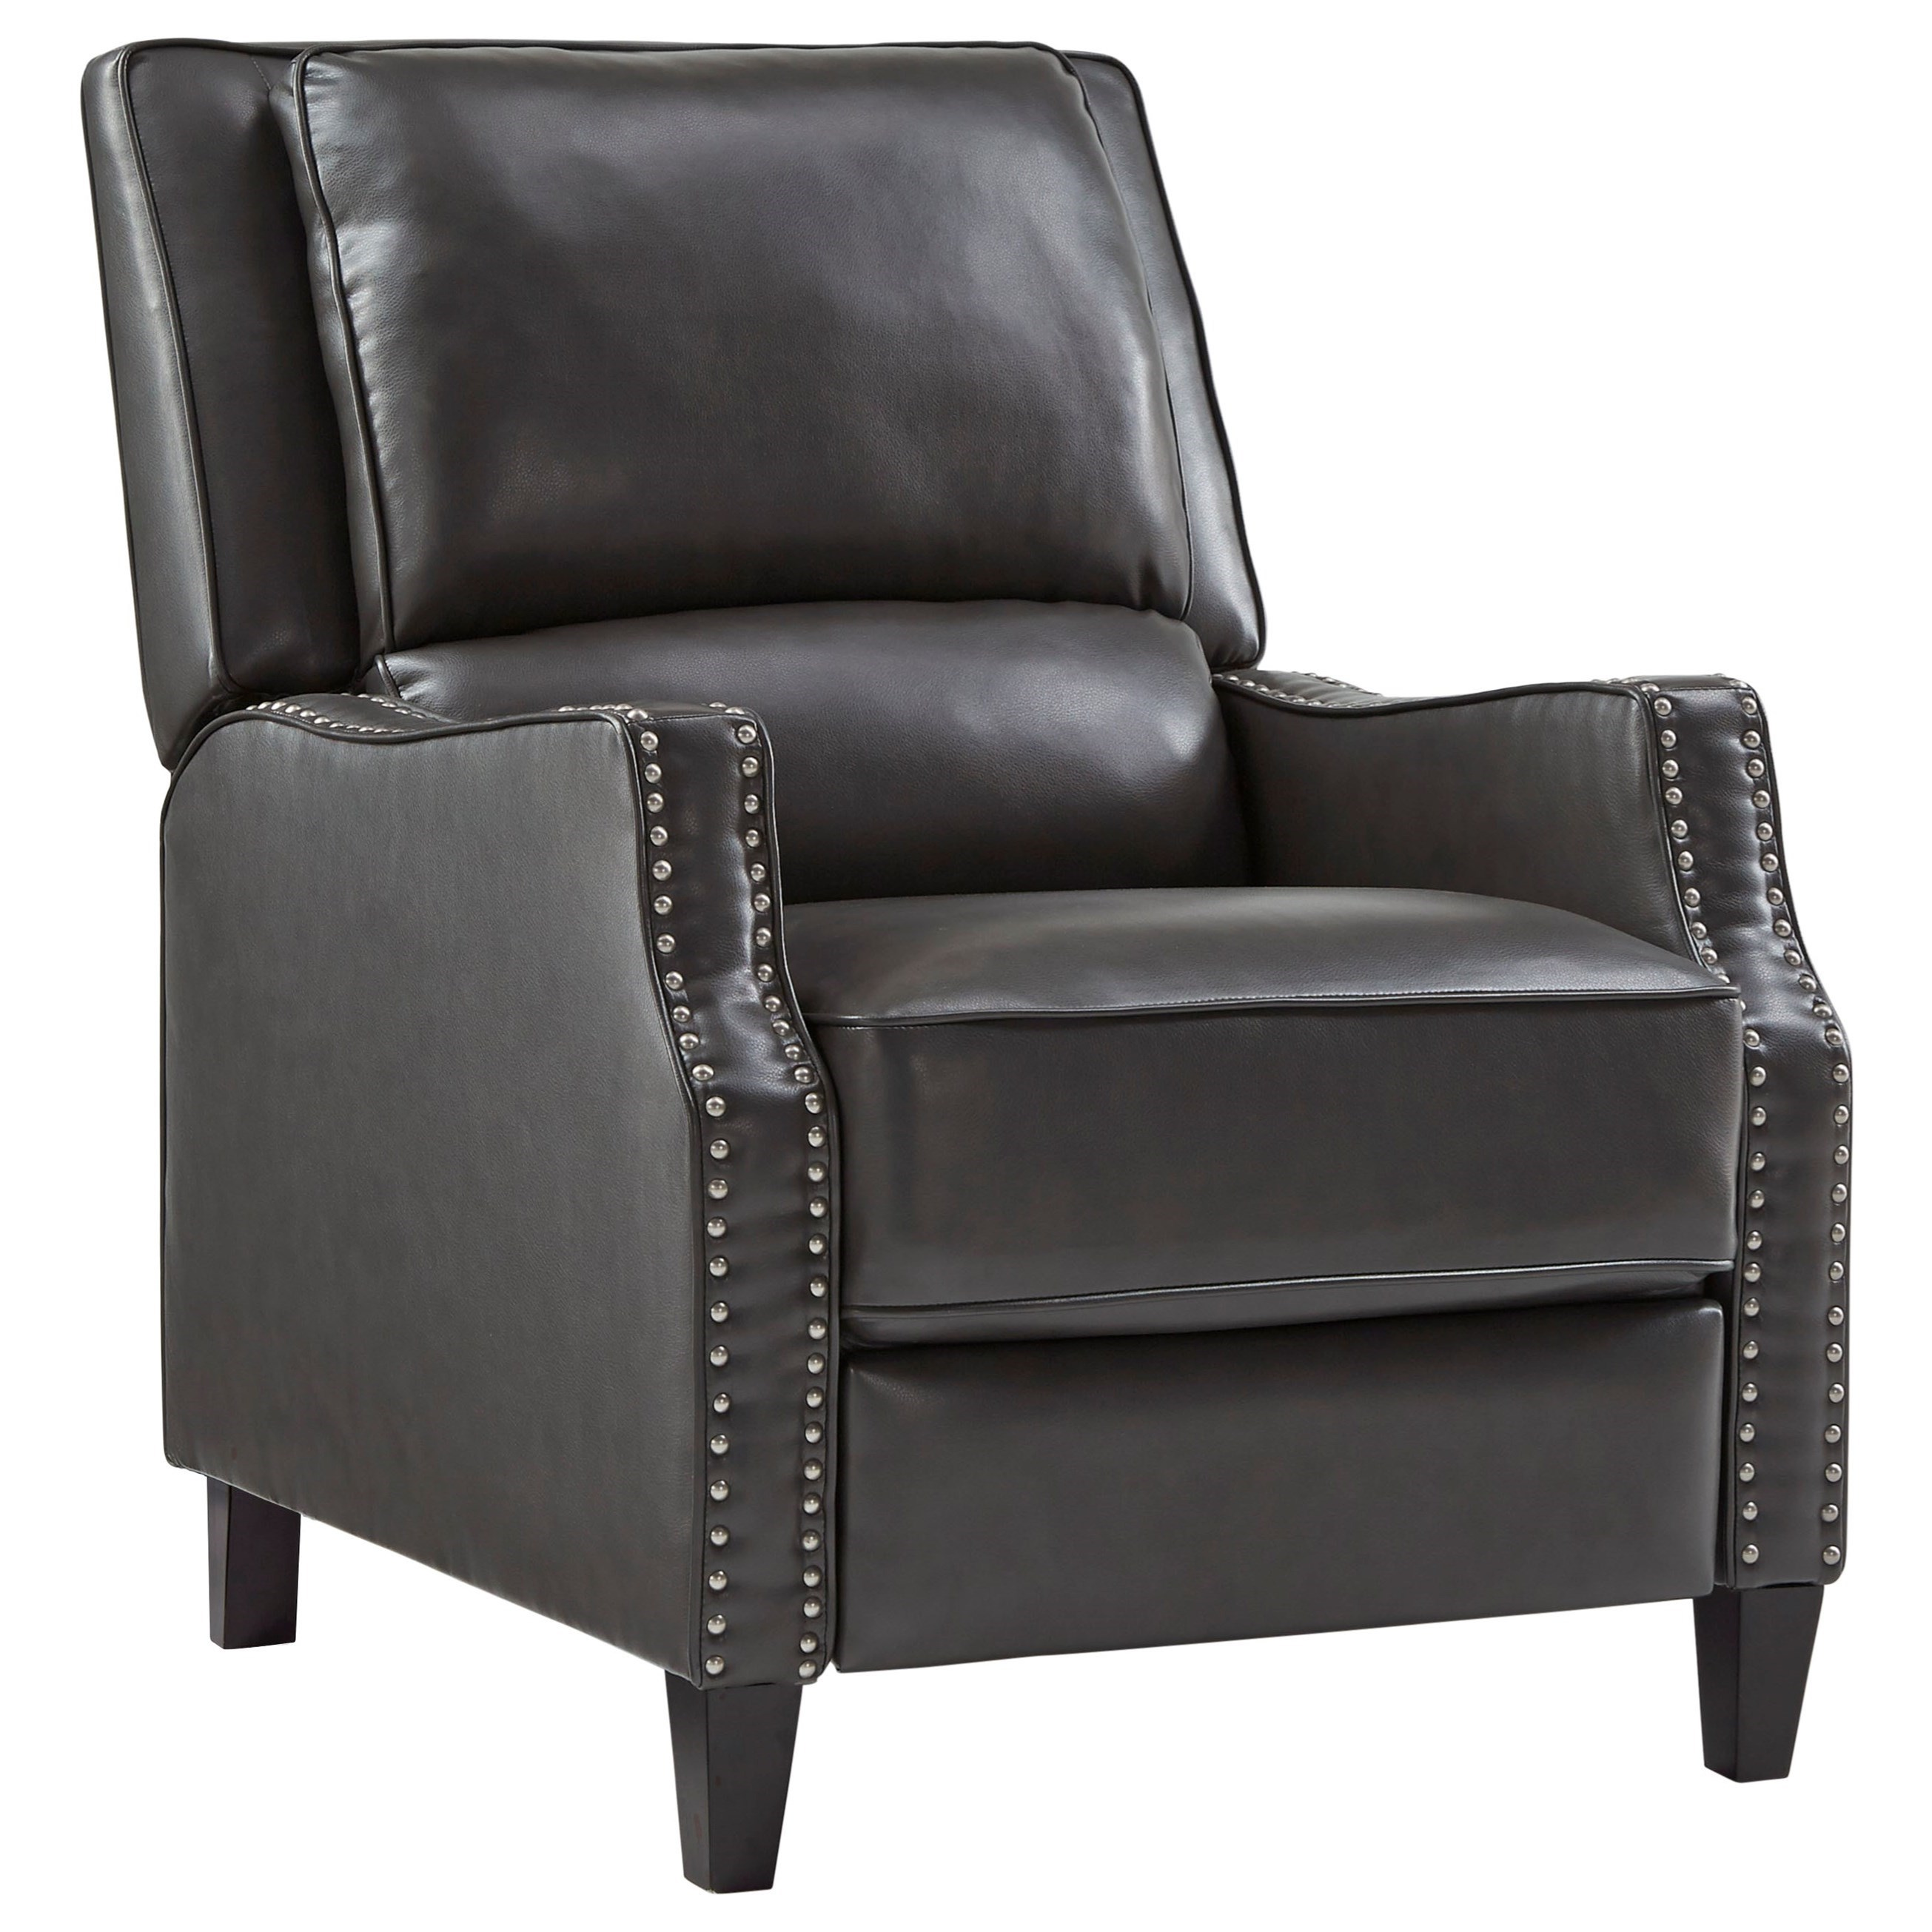 Standard Furniture Alston Recliner - Item Number: 4218831